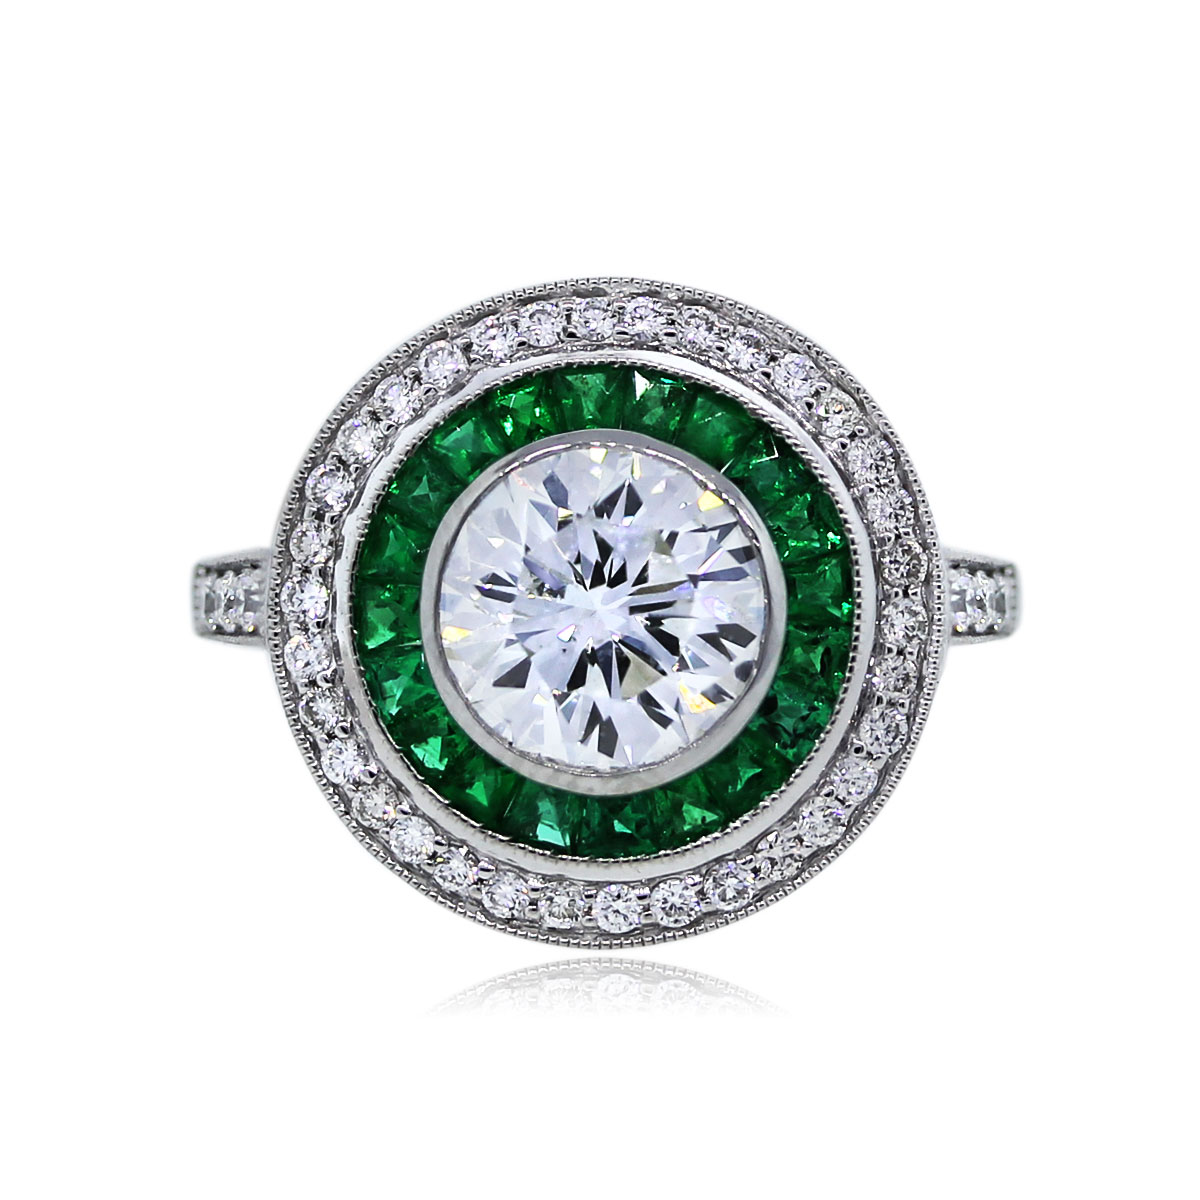 You are Viewing this Stunning 1.53ct Emerald and Diamond Engagement Ring!